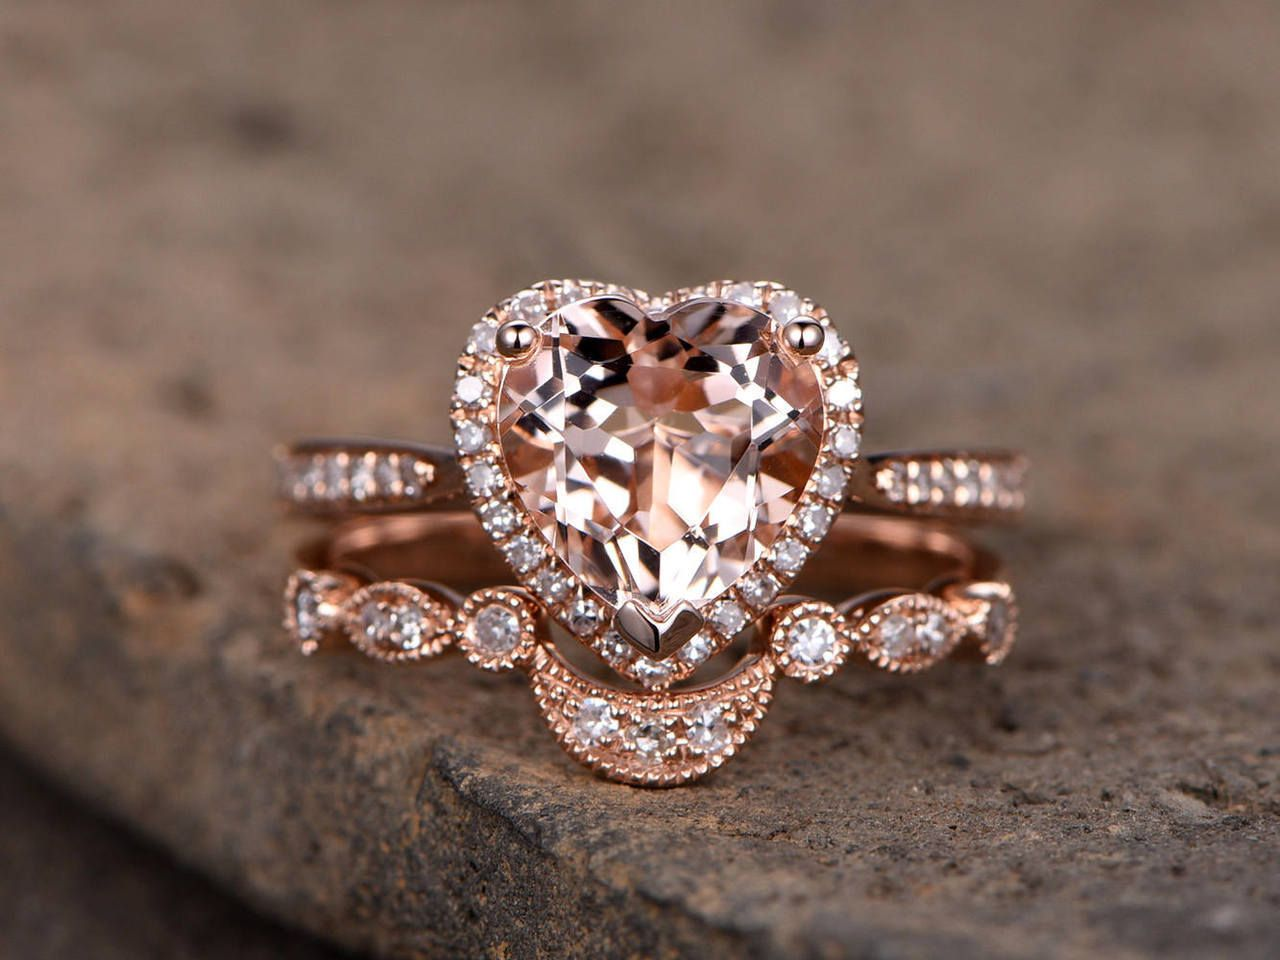 This pretty stacked Morganite ring